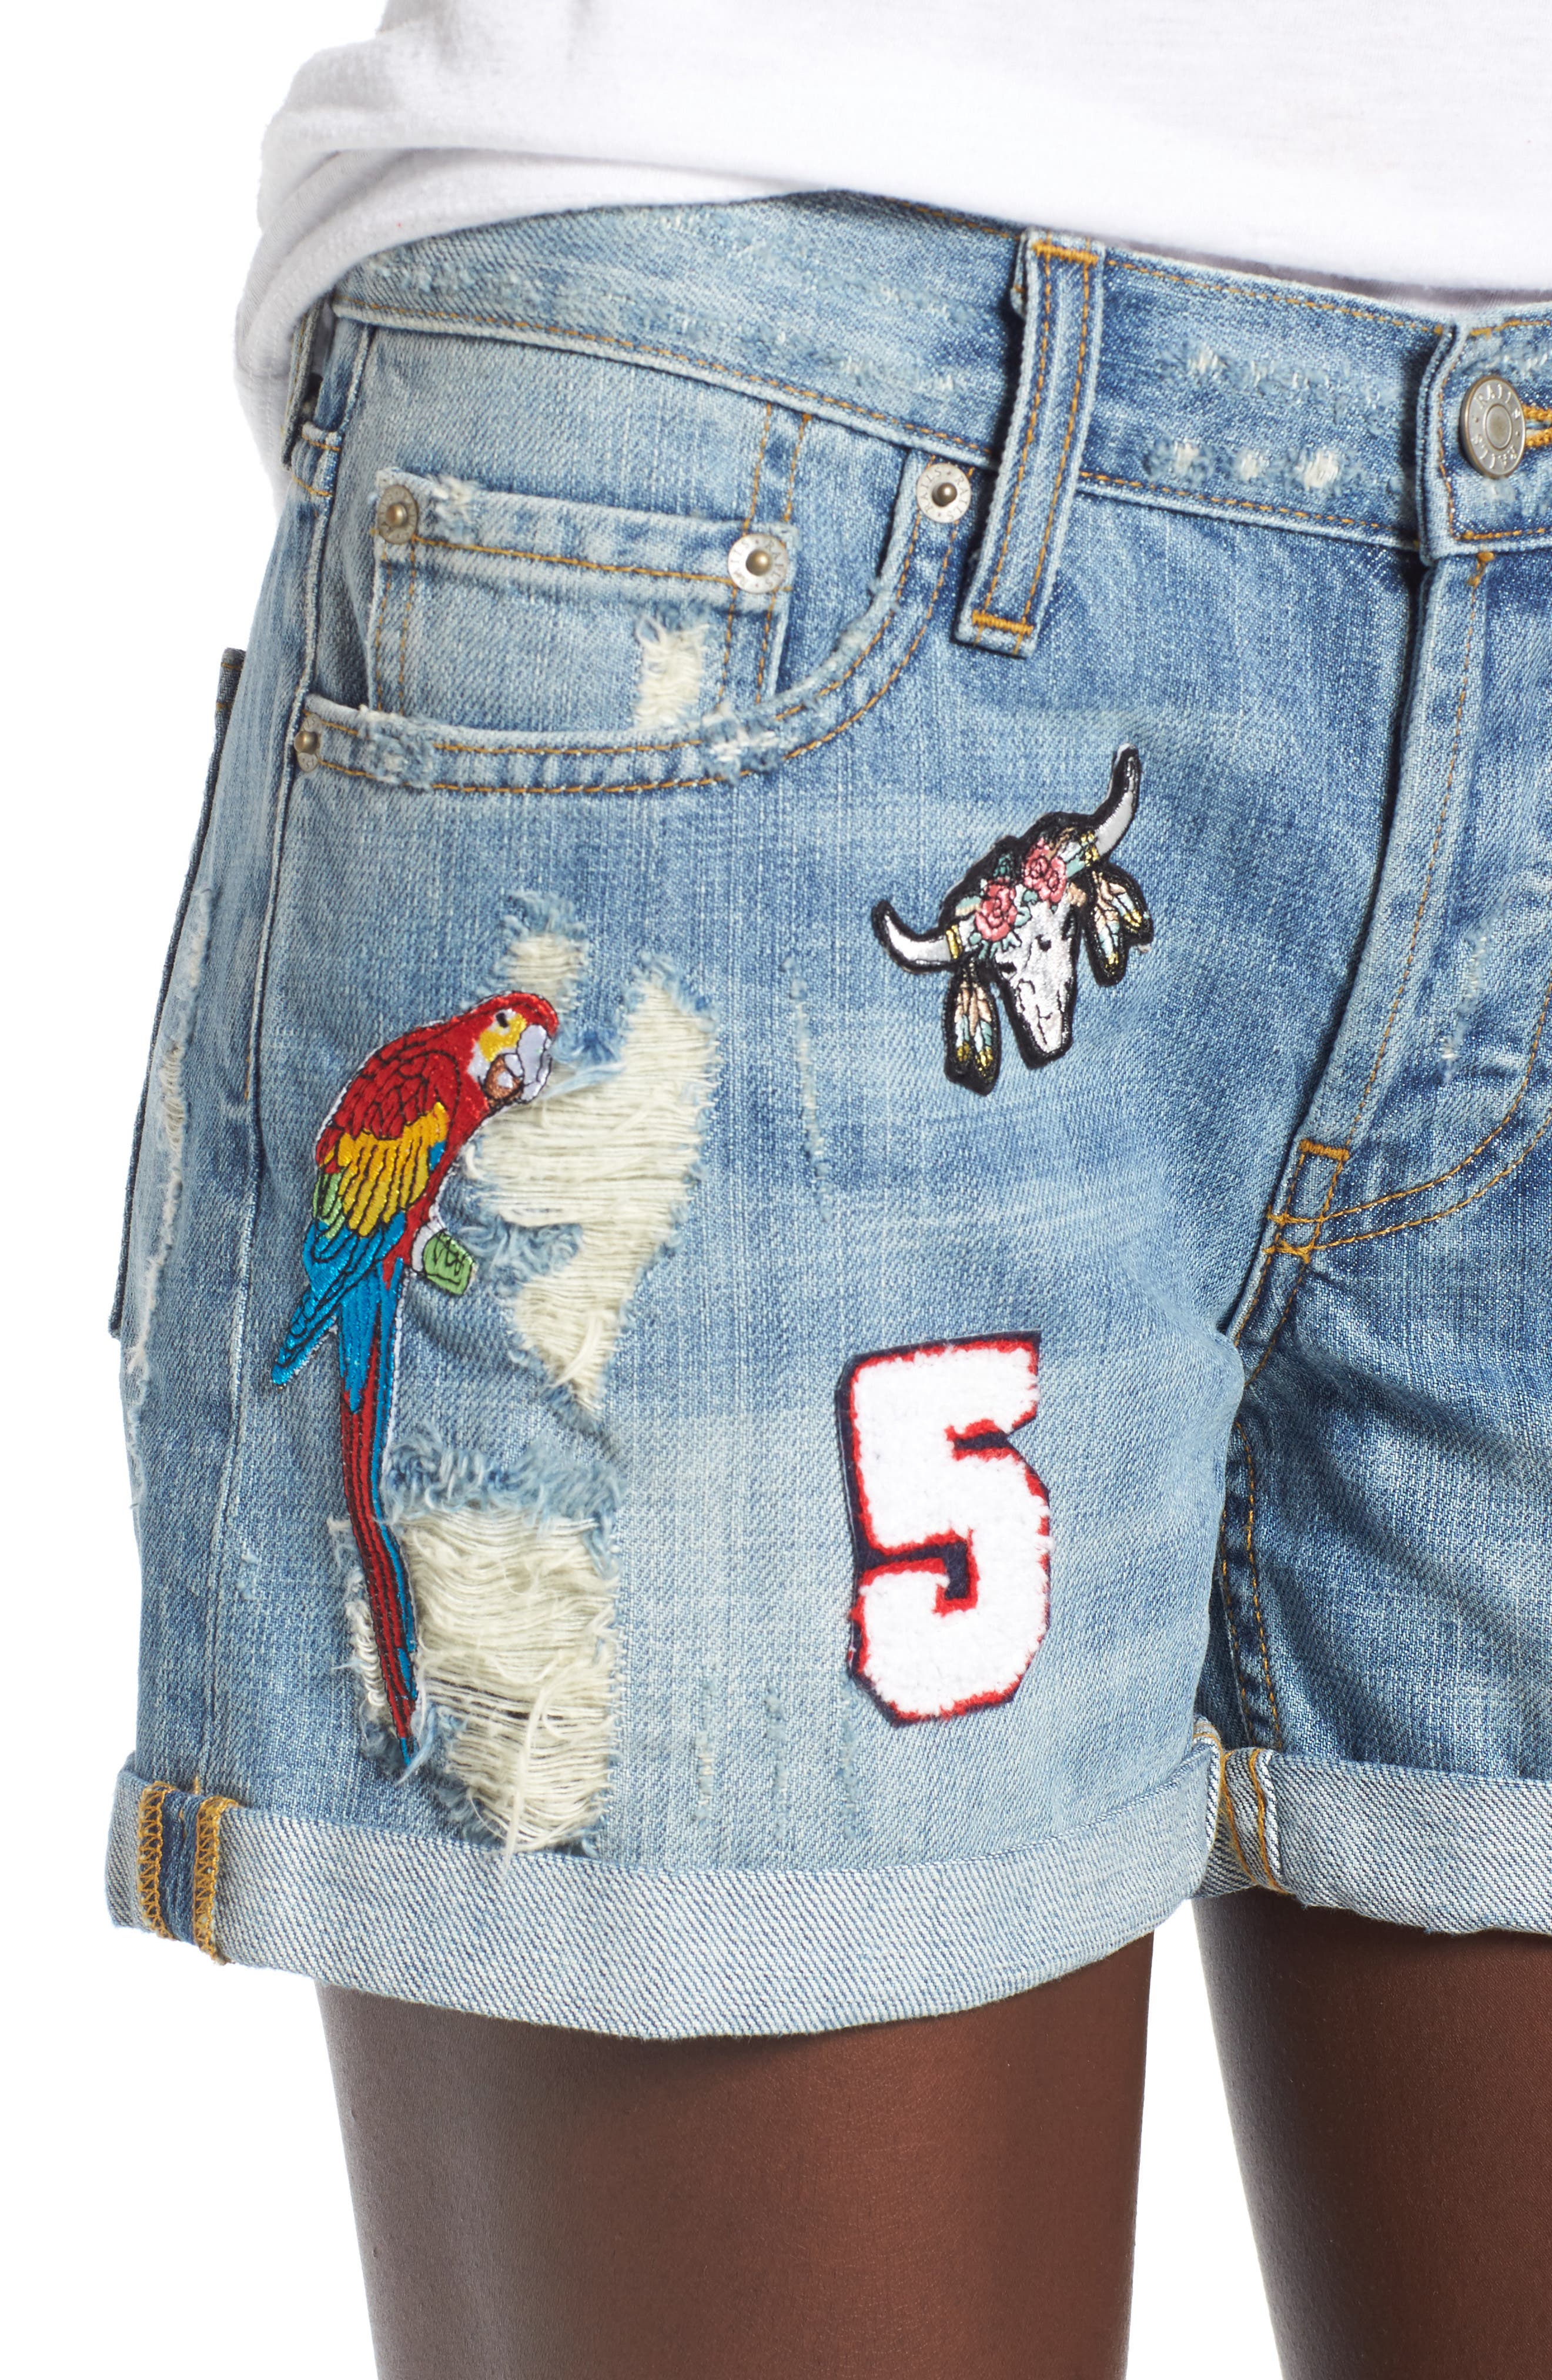 Logan Patch Denim Shorts,                             Alternate thumbnail 4, color,                             Medium Vintage Wash